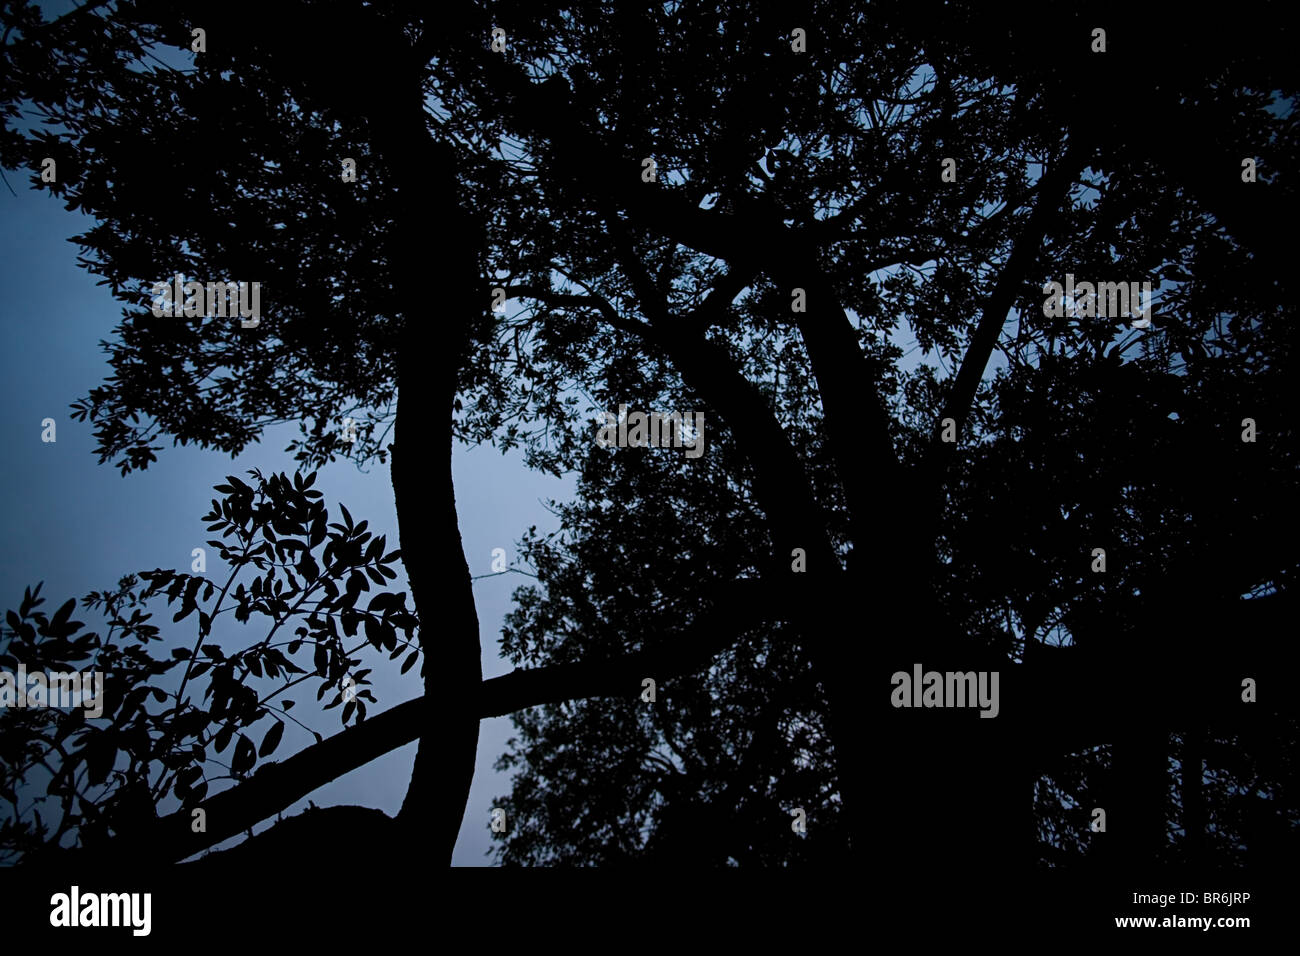 Color photo of tree silhouette with blue tone - Stock Image